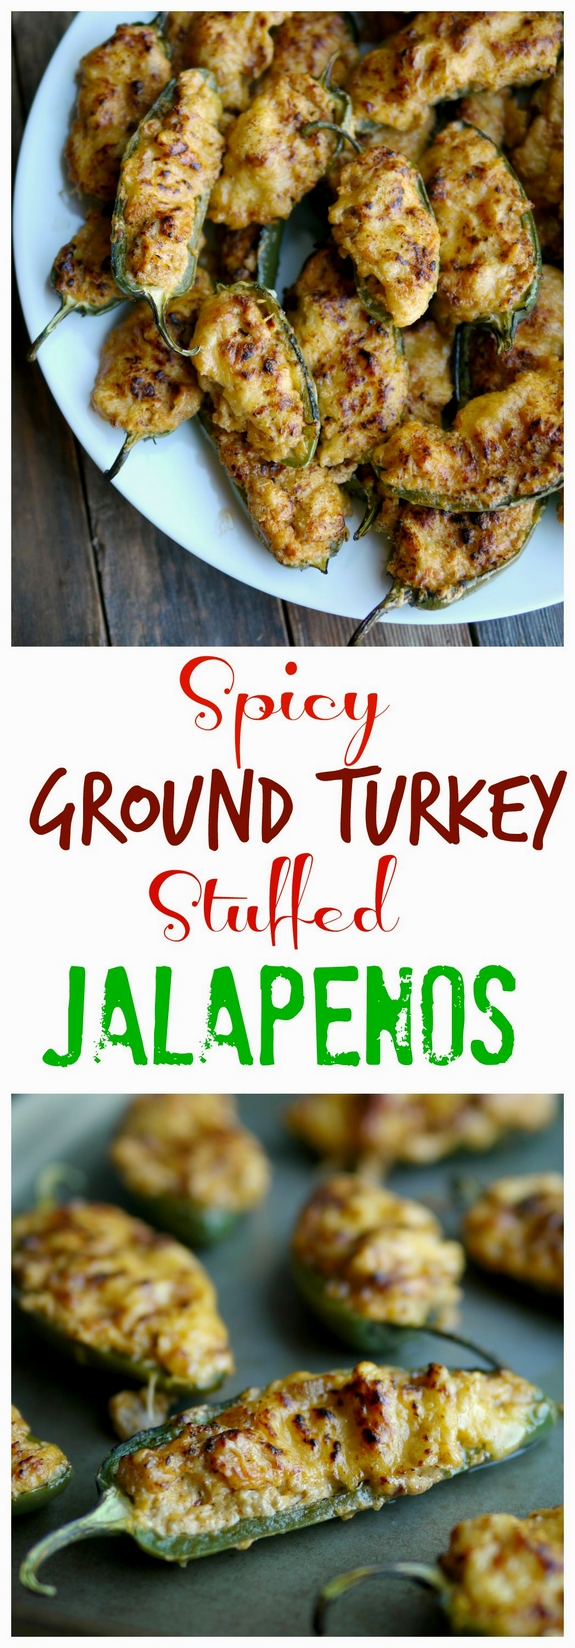 Spicy Ground Turkey Stuffed Jalapenos a perfect game day appetizer GO TEAM